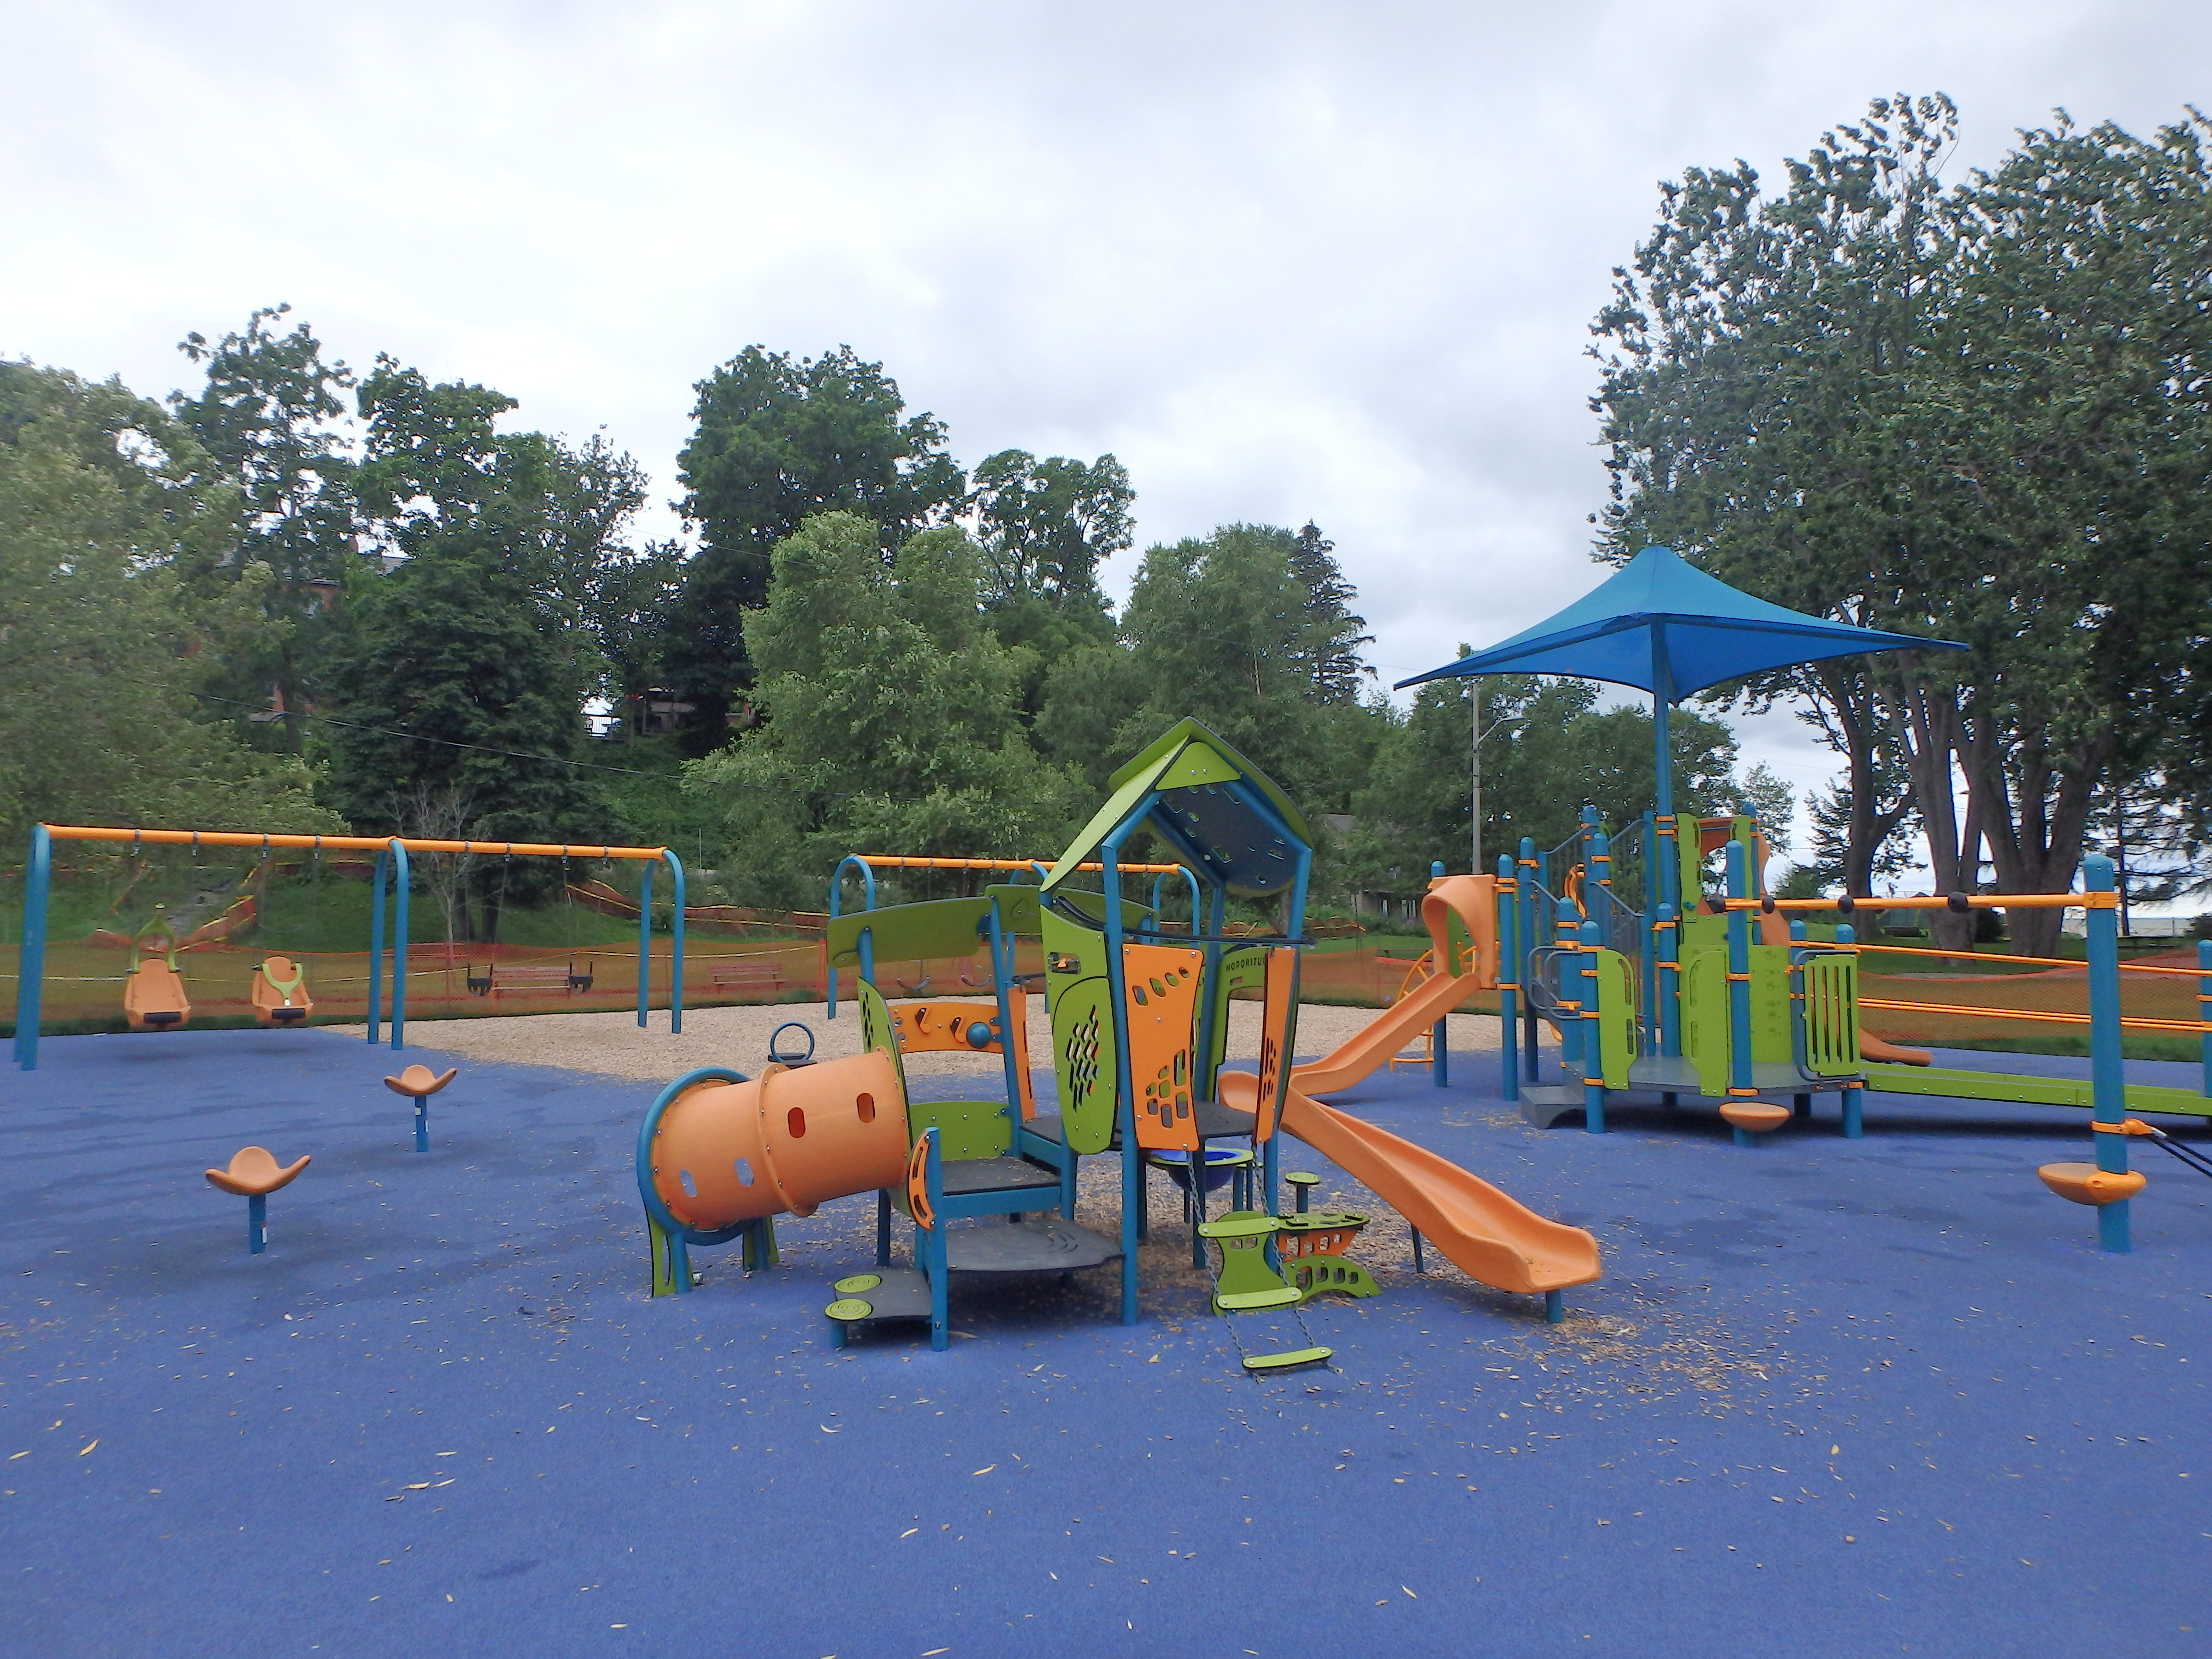 G:\!PARKS CEMETERIES FORESTRY AND HORTICULTURE\Parks-Inventory\Play-Equipment\Lakeside Park\Lakeside 2.JPG